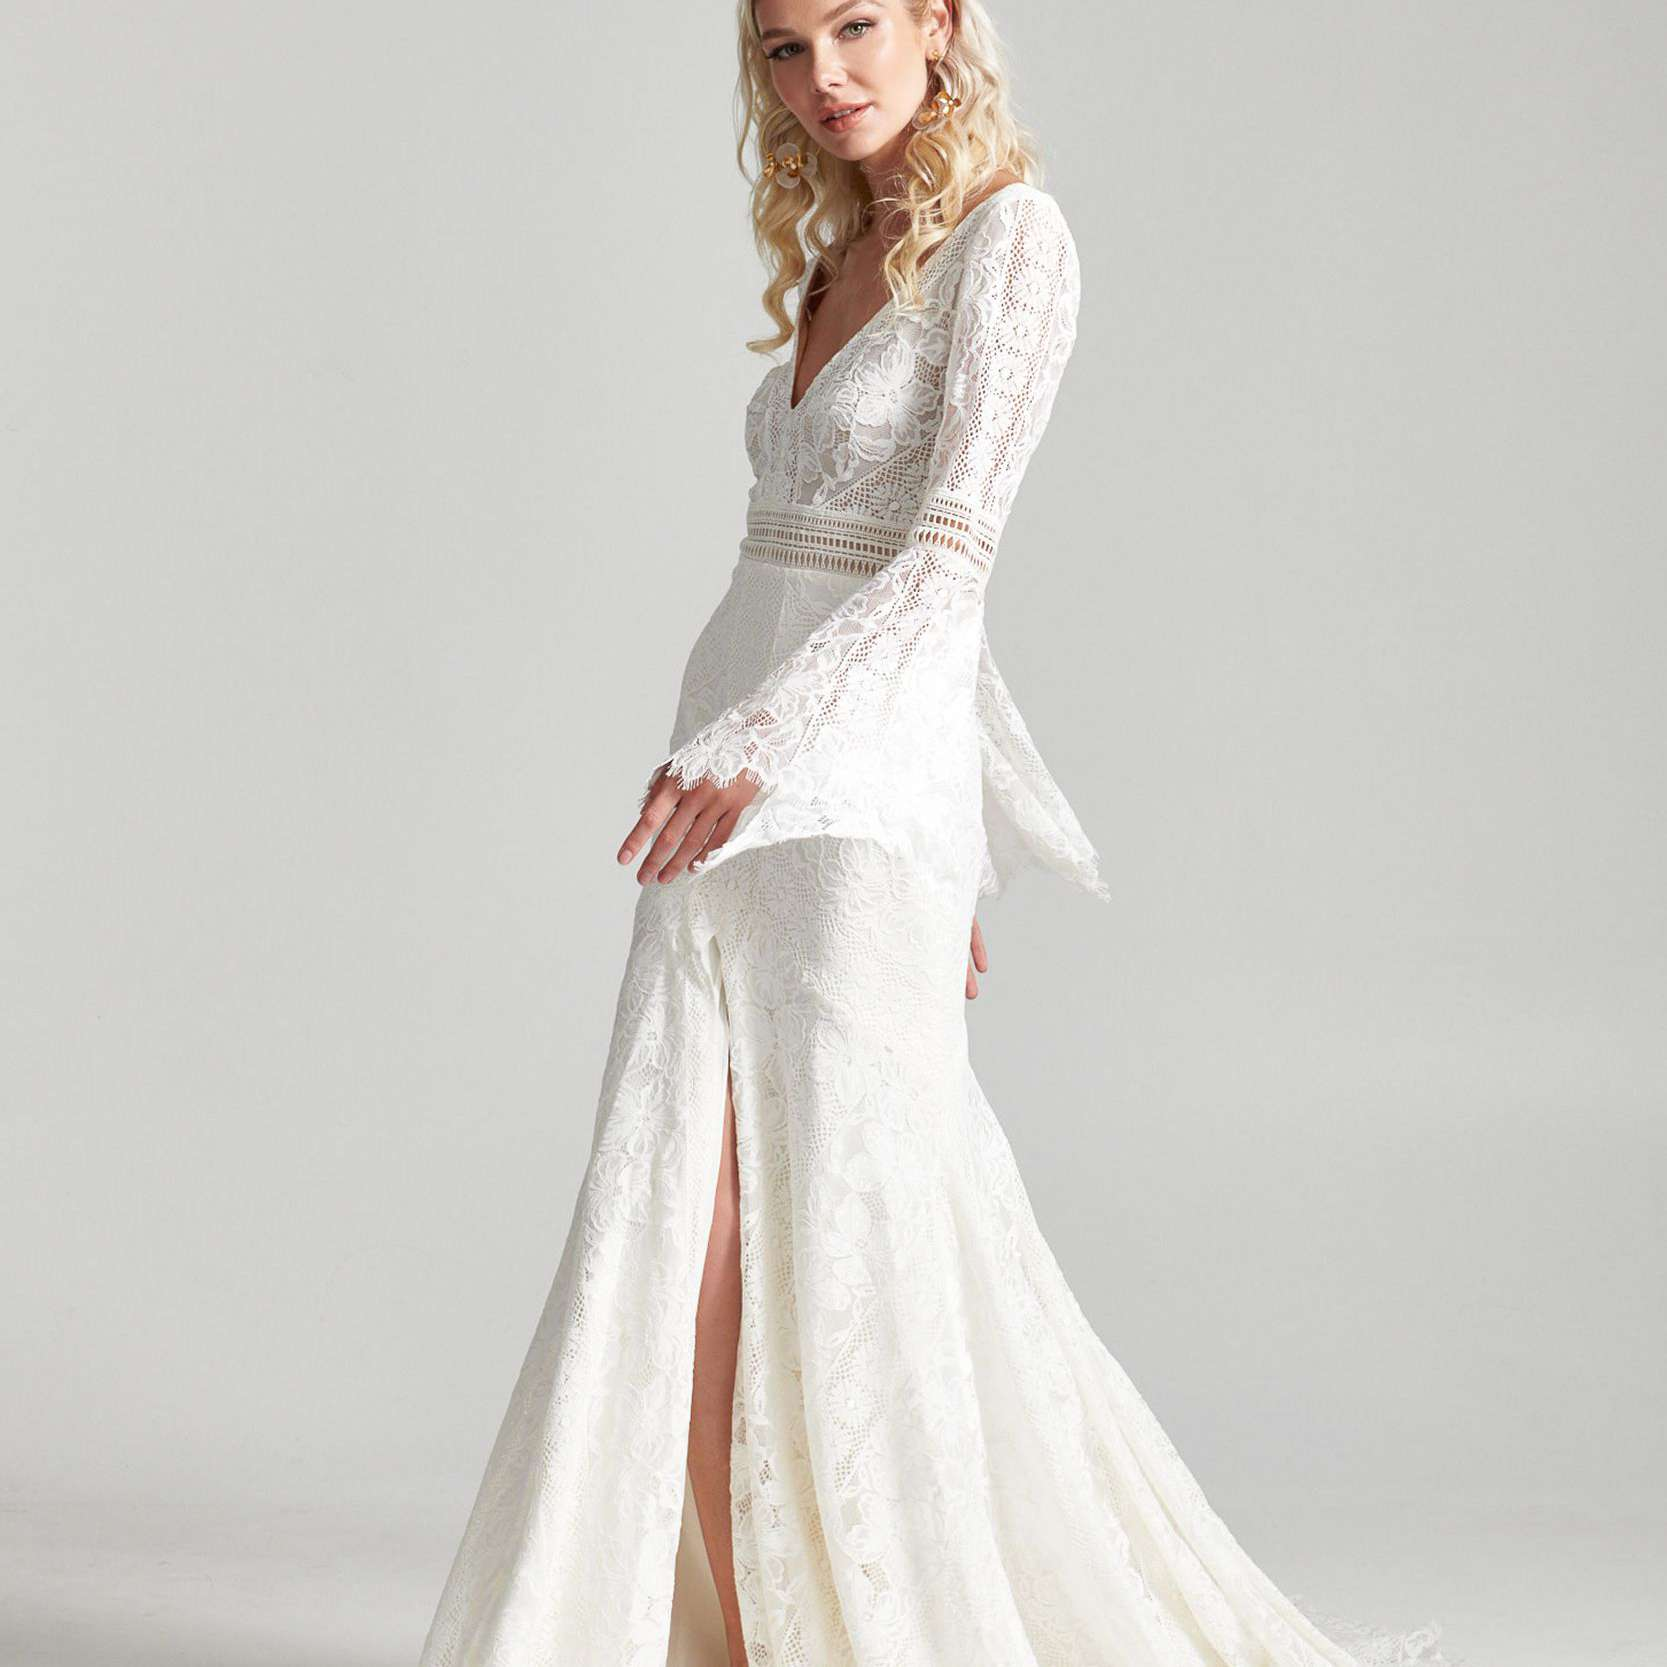 Model in lace wedding dress with long bell sleeves and skirt slit